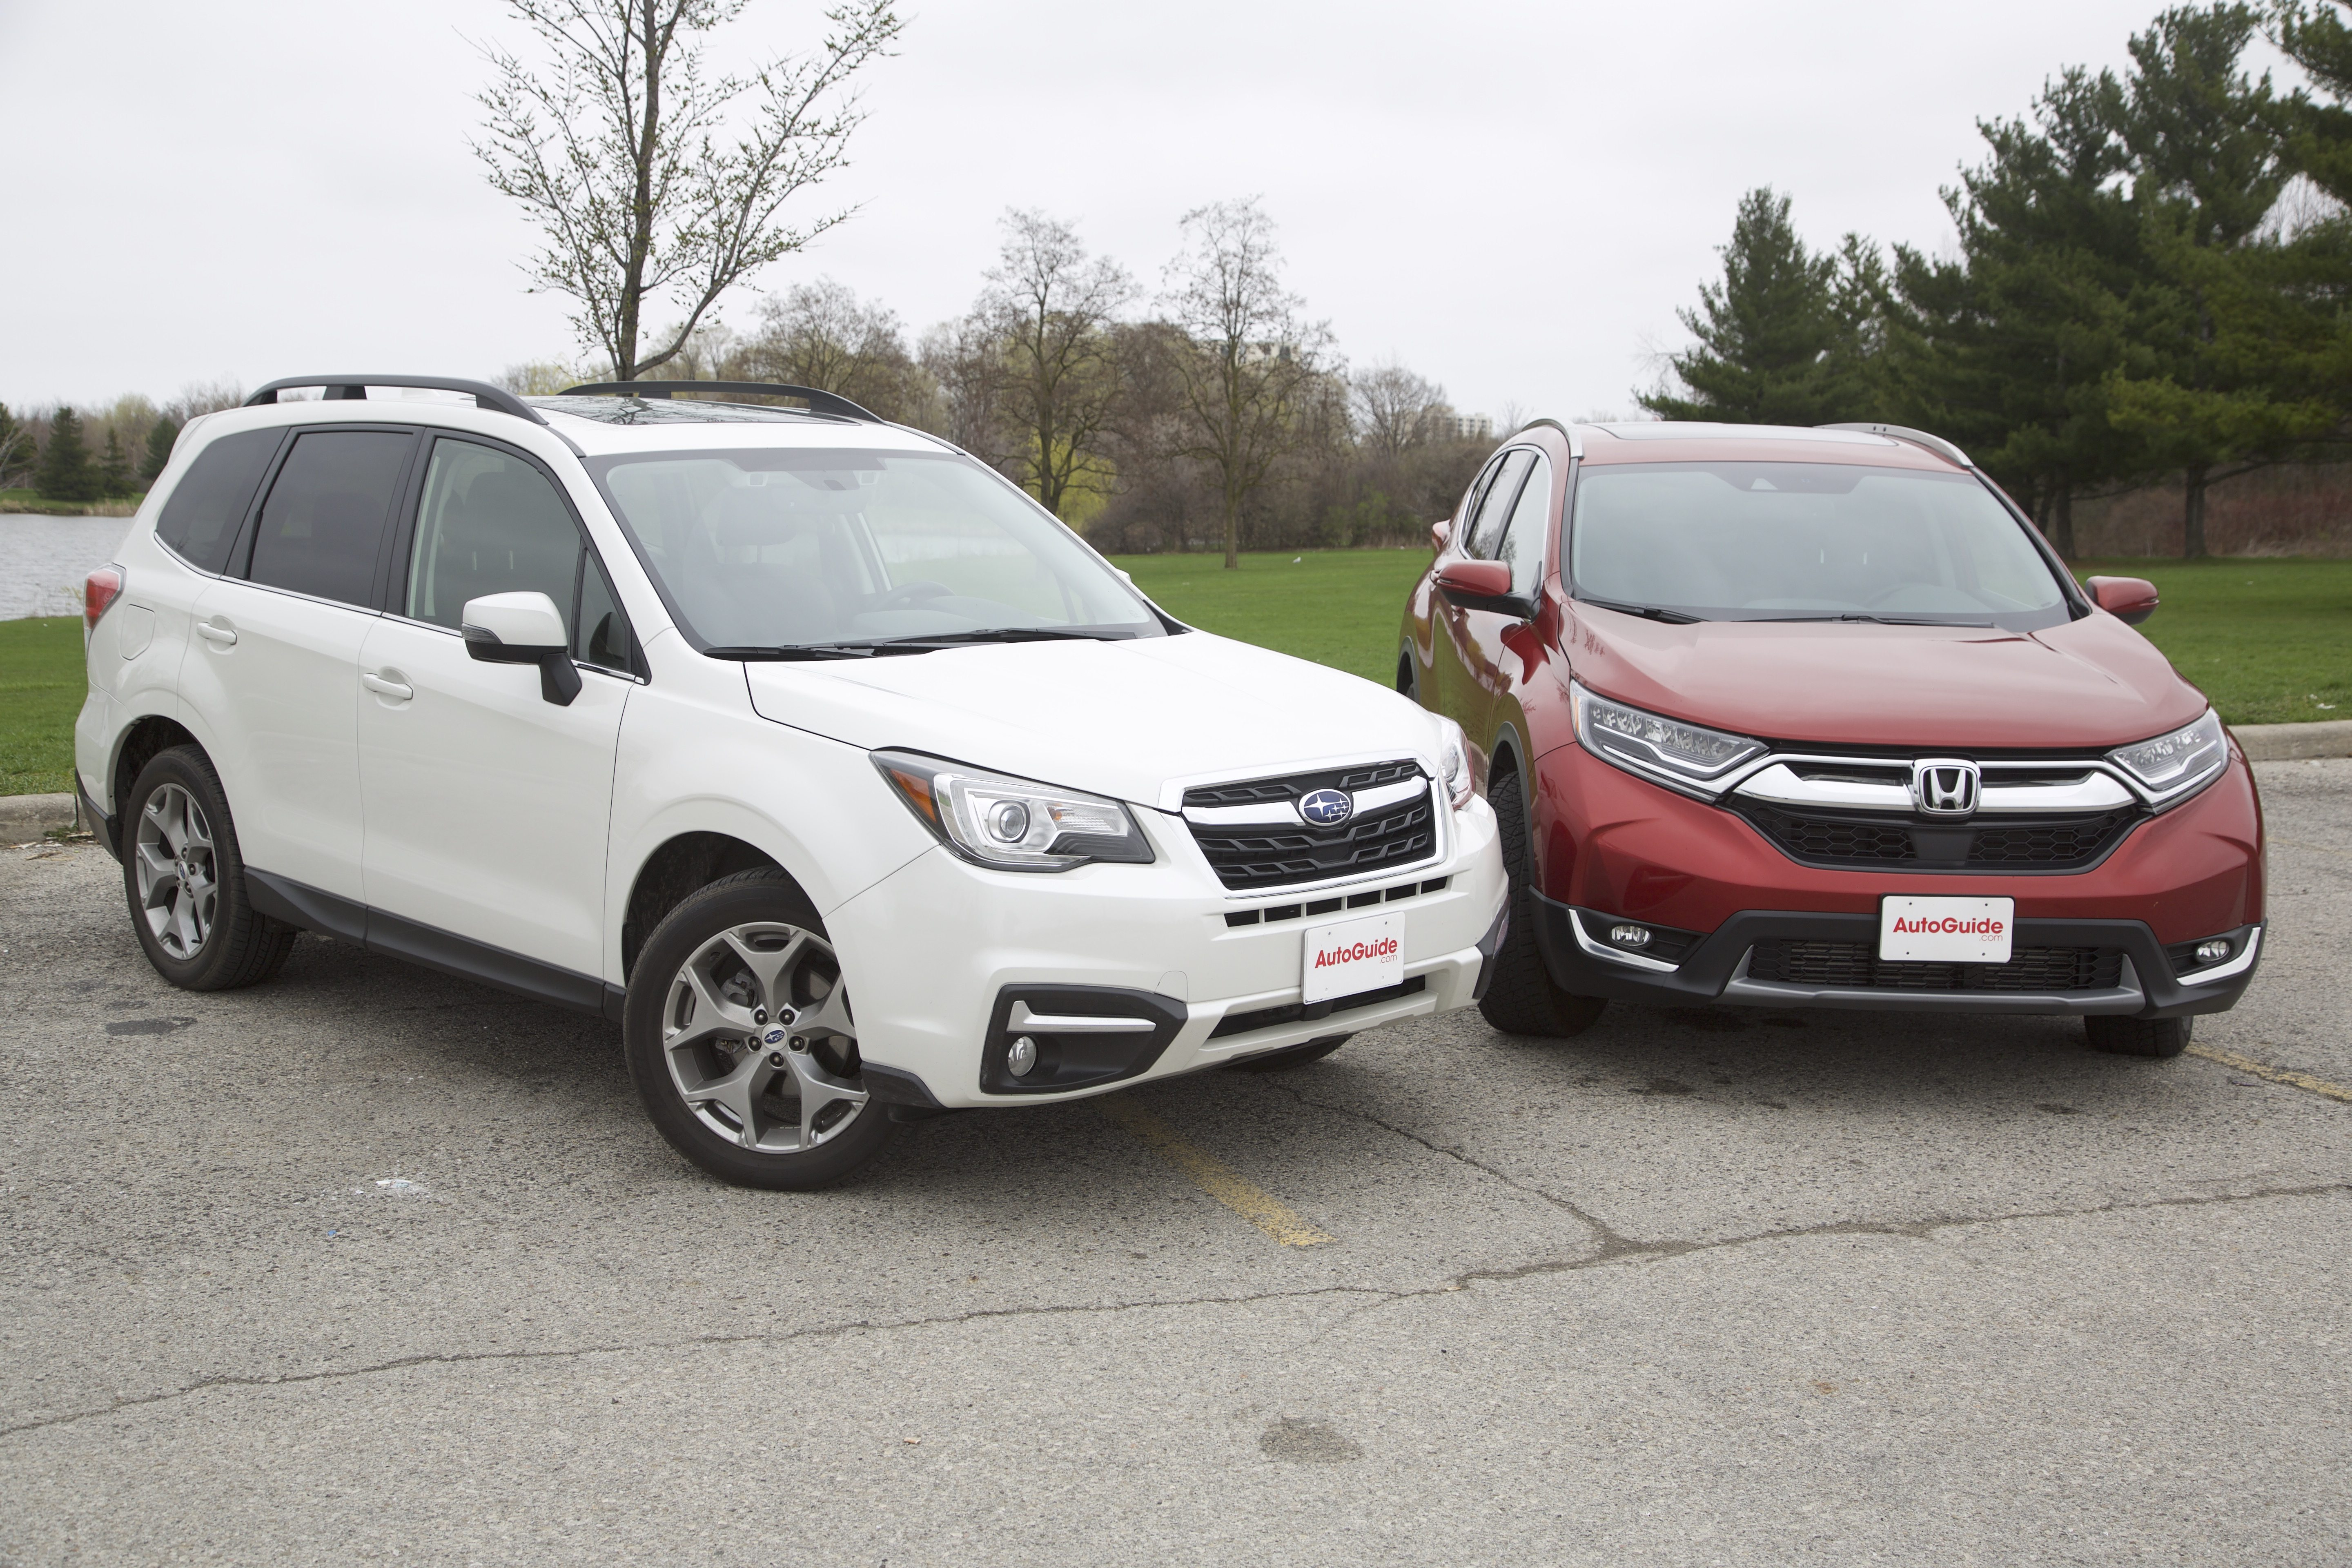 2017 honda cr v vs 2017 subaru forester news for Honda crv vs subaru forester